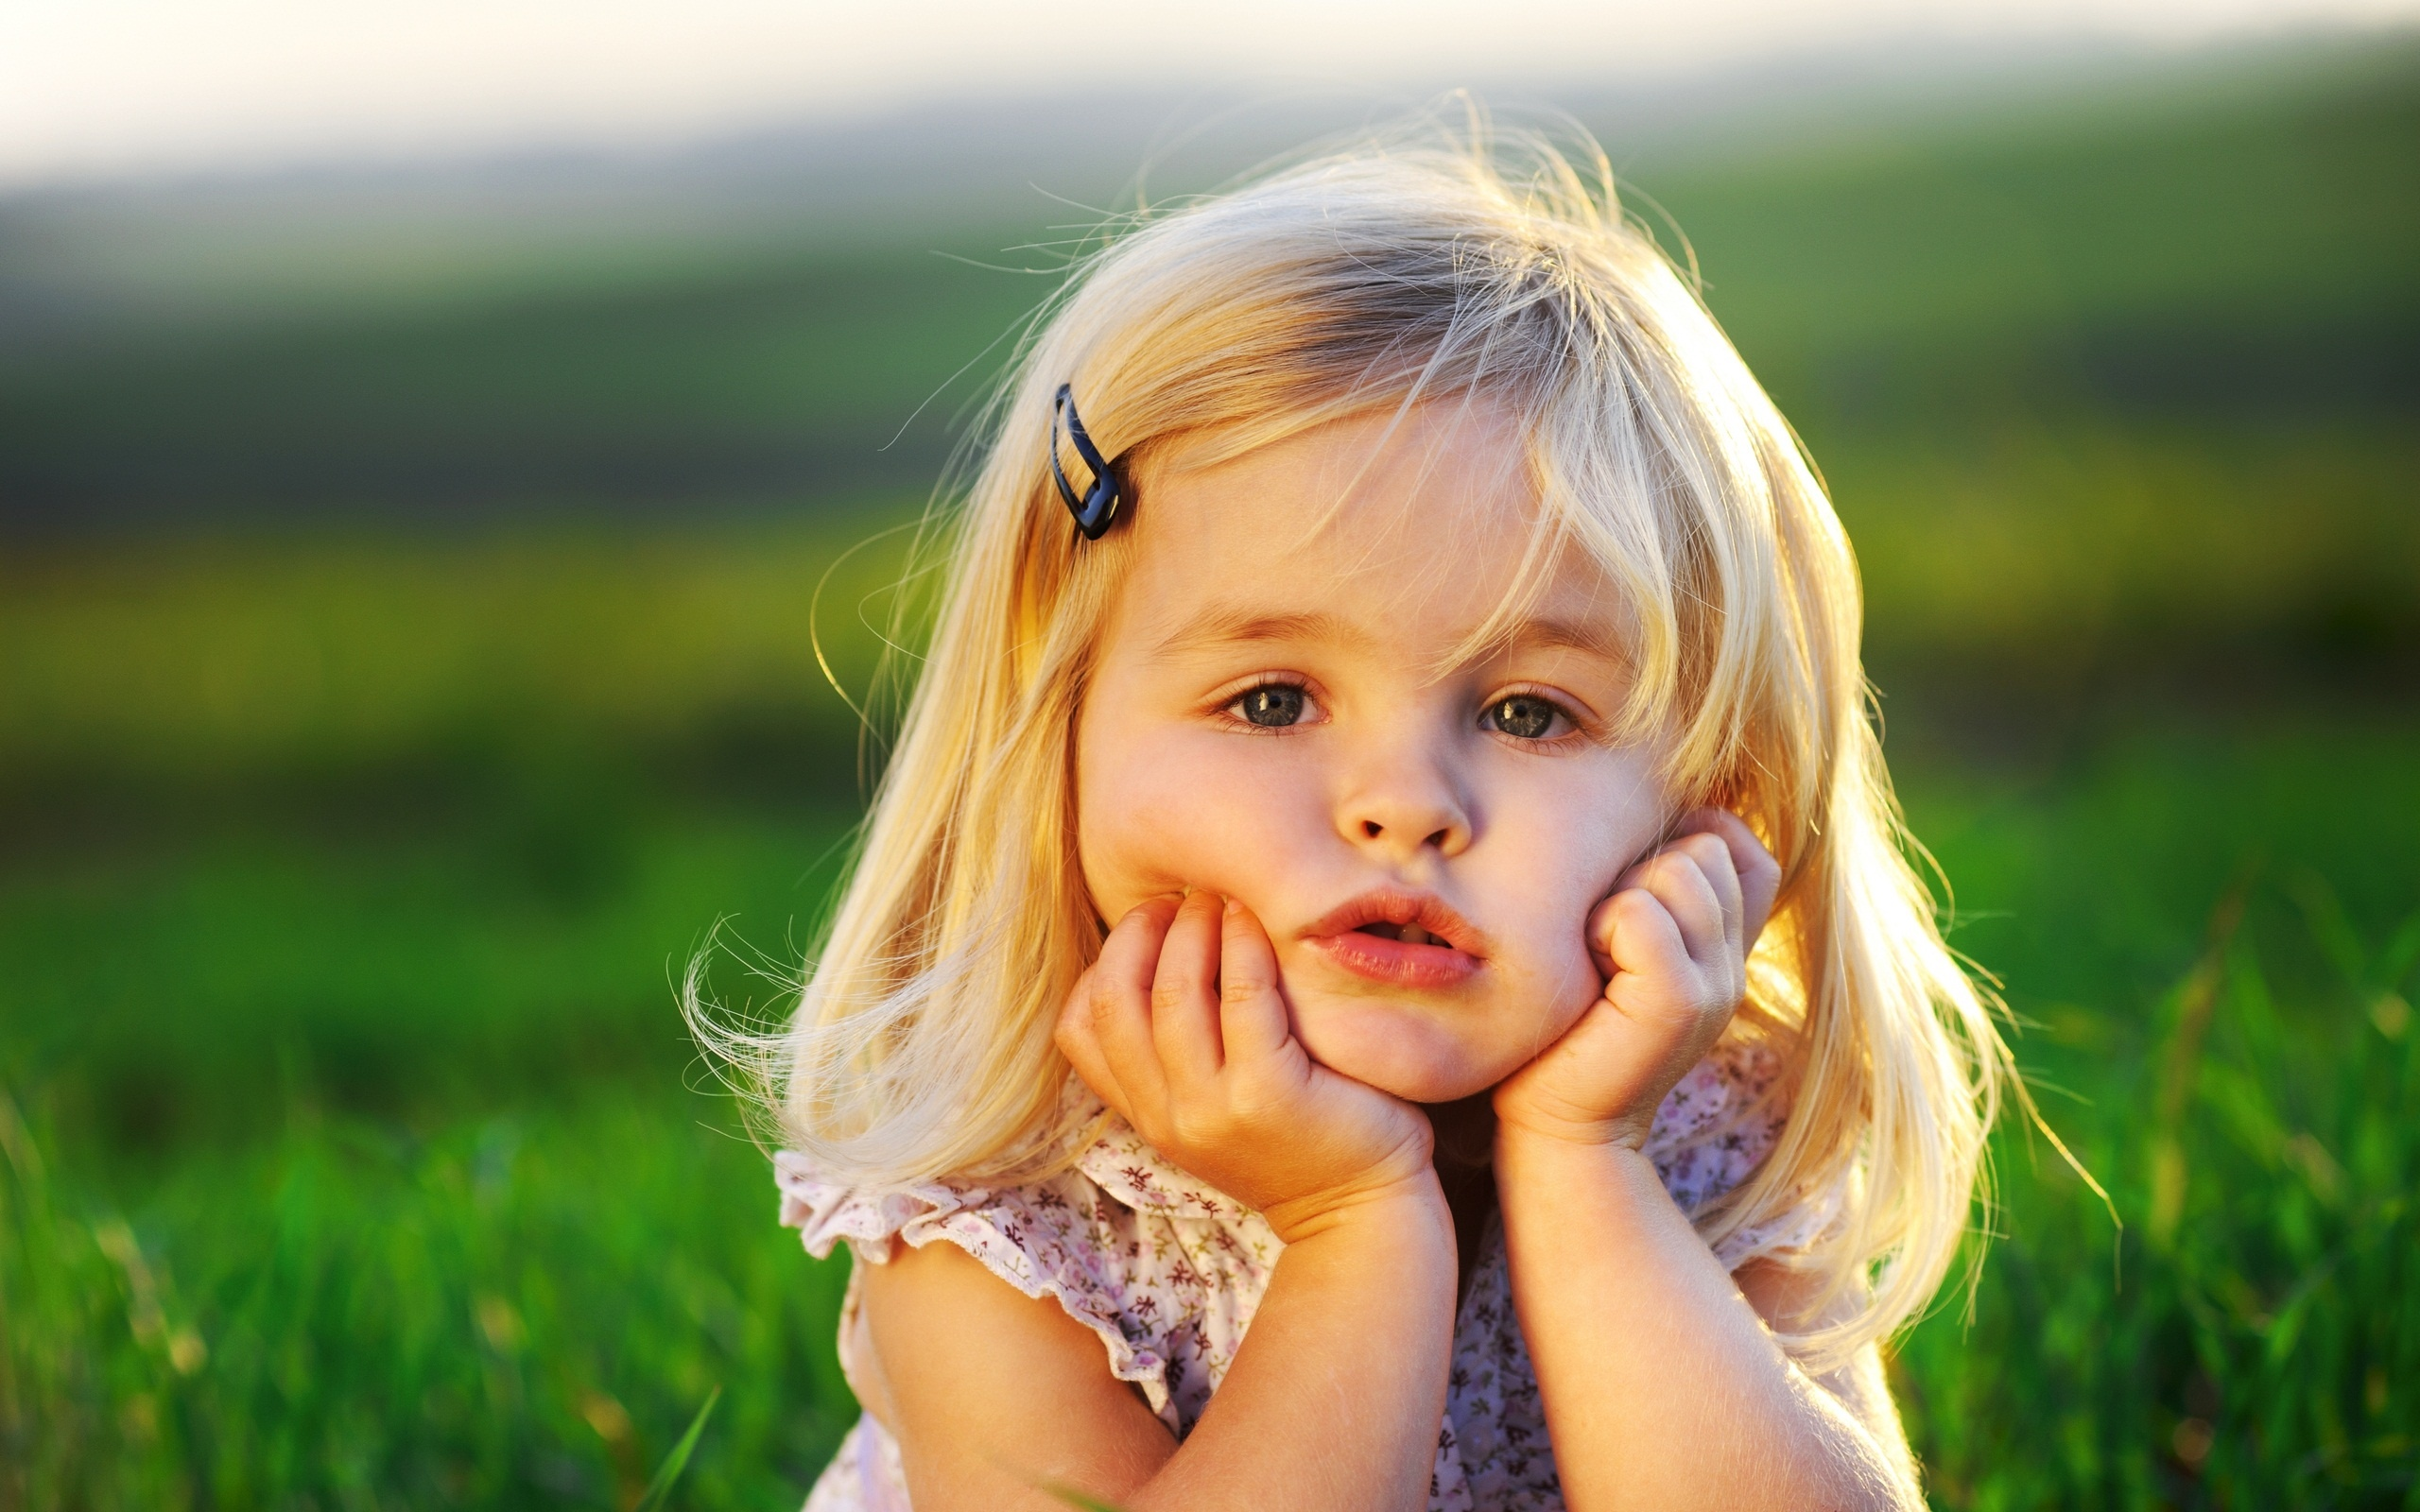 Cute little baby girl Wallpapers - 2560x1600 - 982339